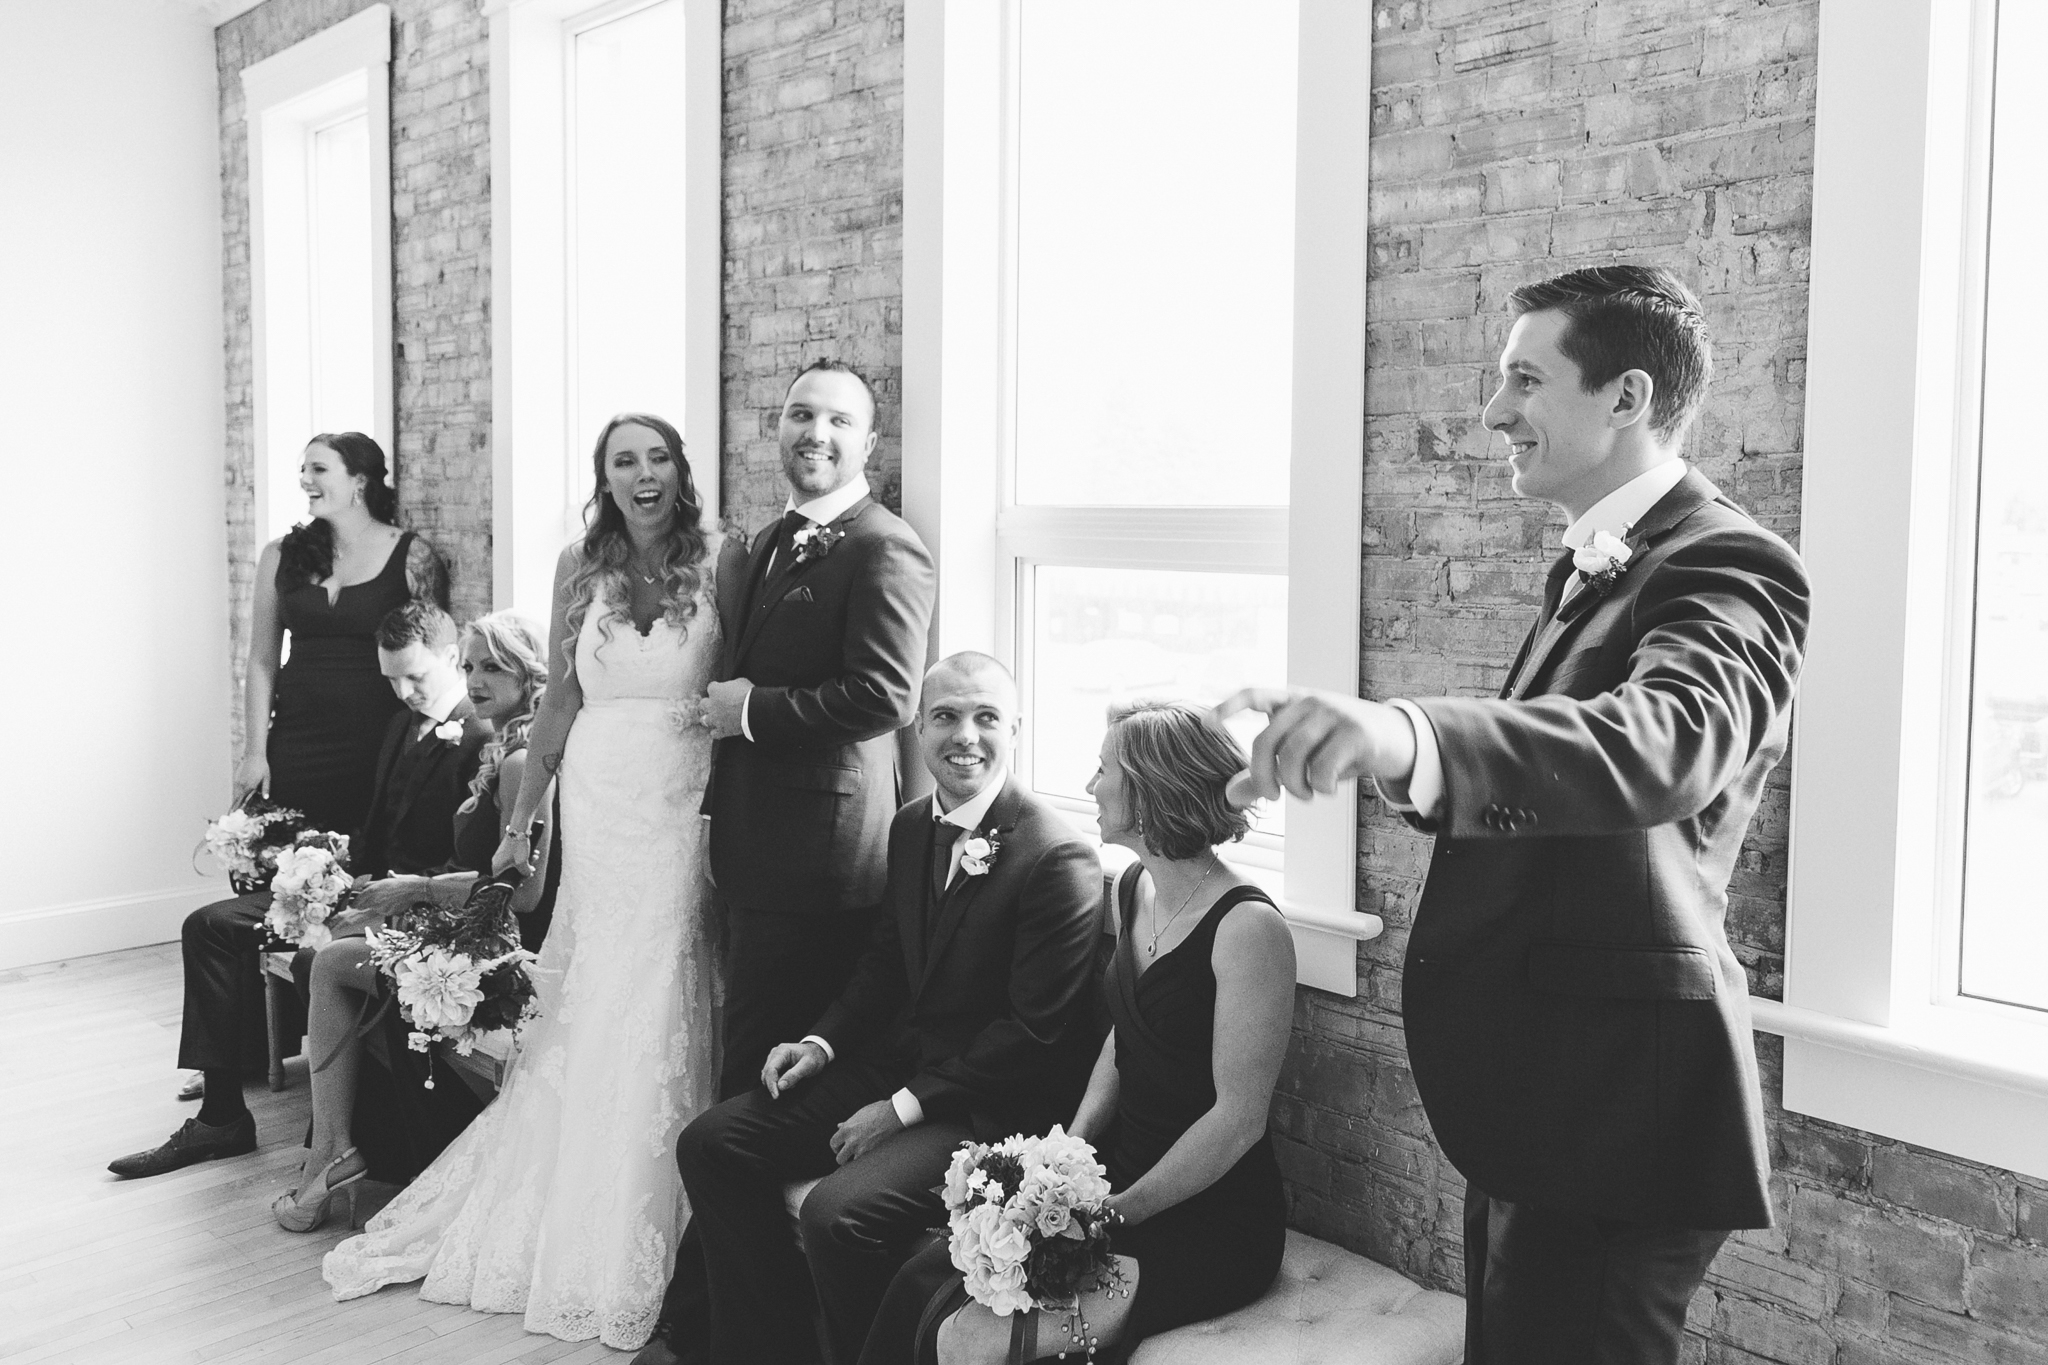 lethbridge-photographer-love-and-be-loved-photography-designed-to-dwell-wedding-katie-kelly-photo-image-picture-7.jpg